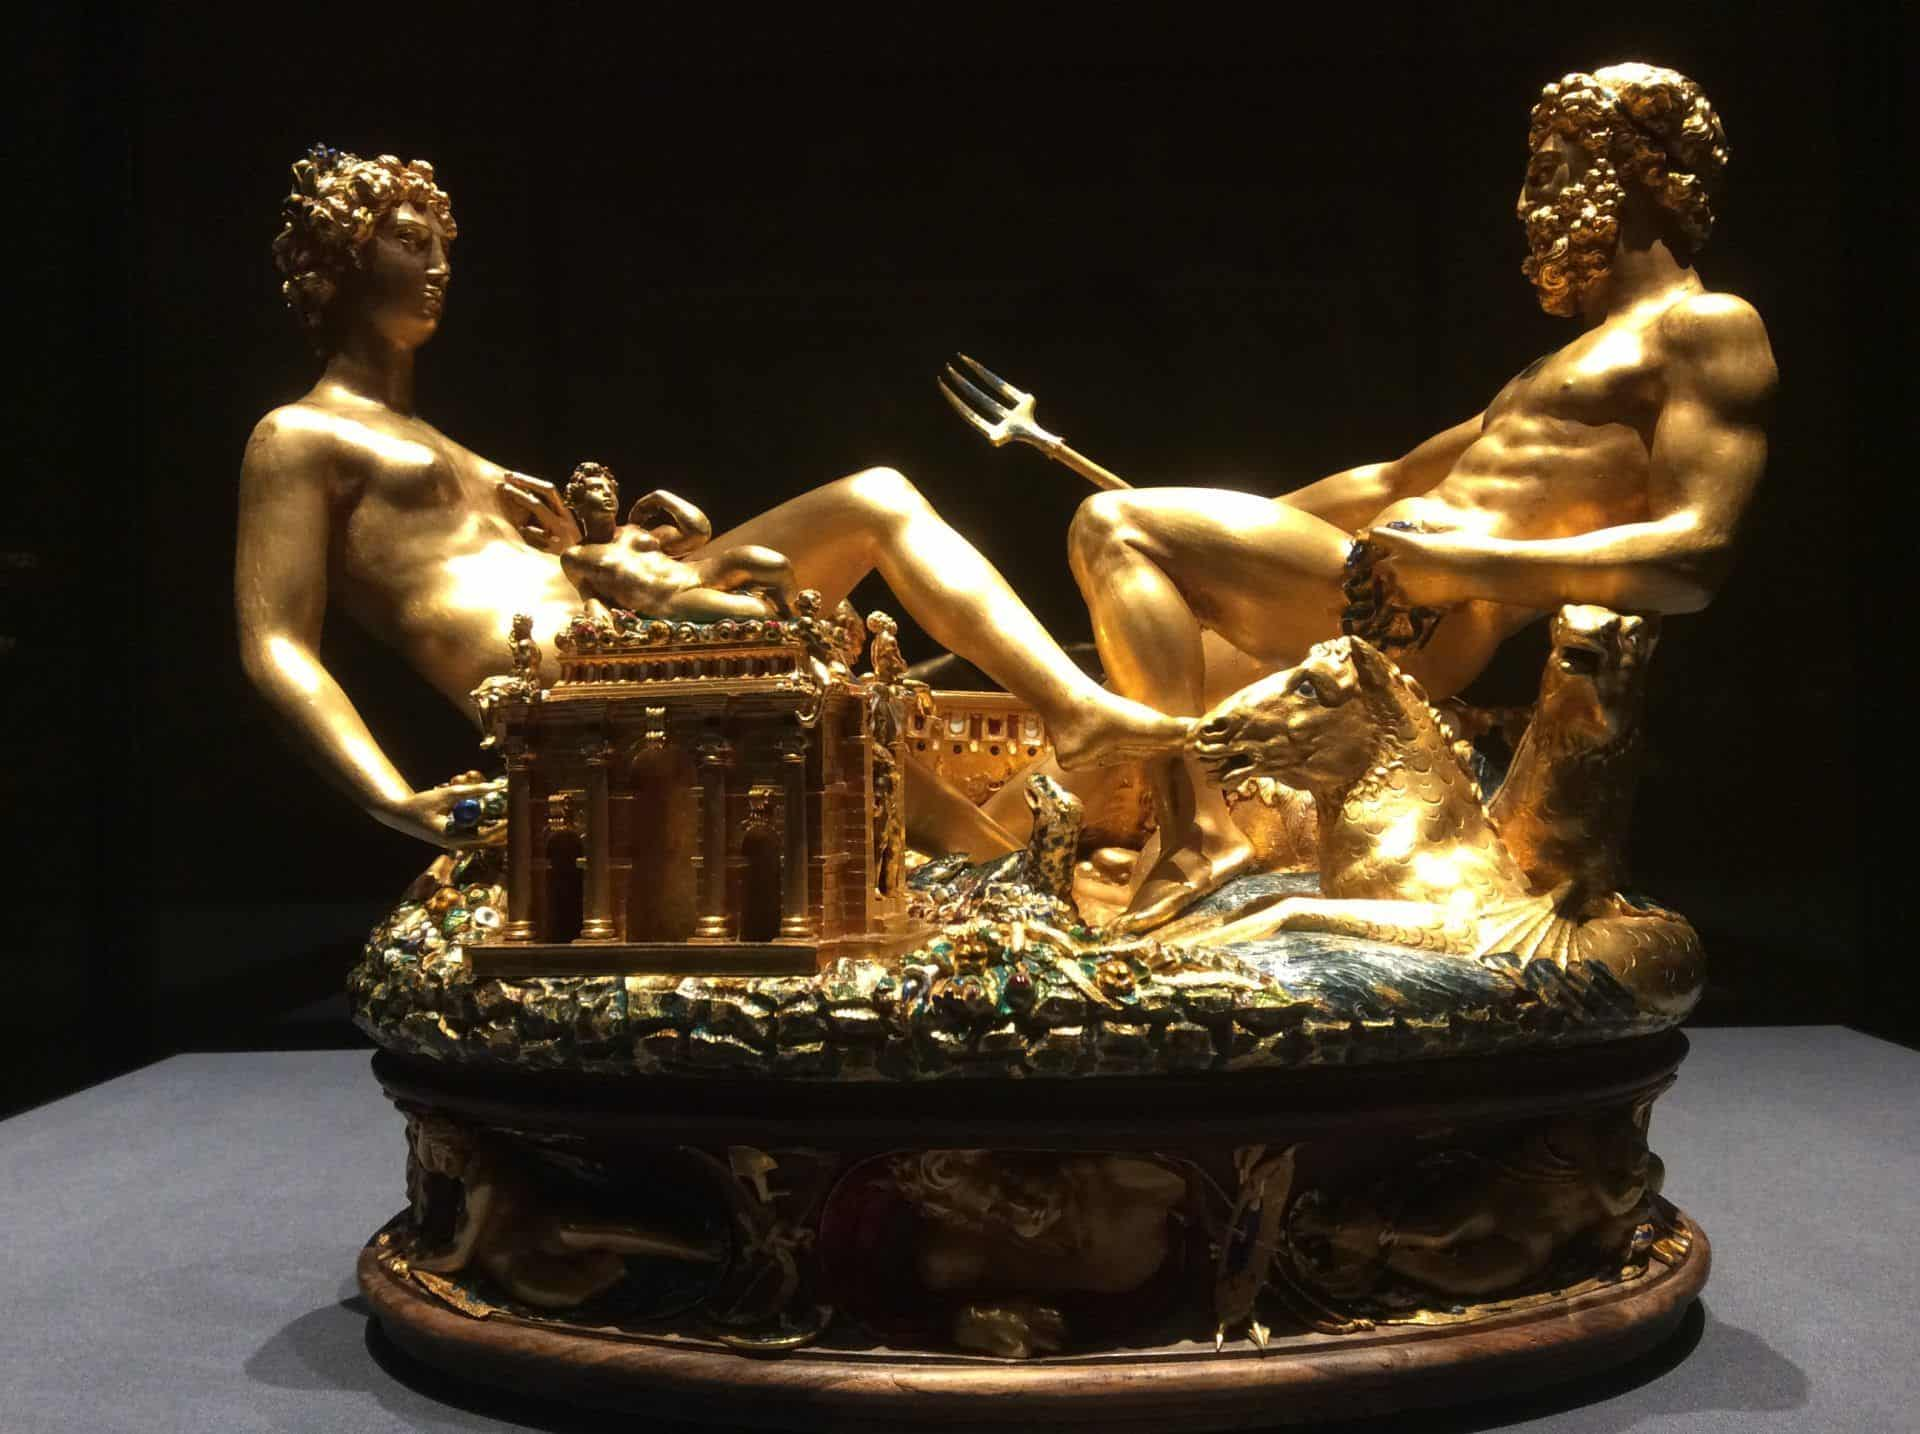 Salt Cellar by Benvenuto Celini at the Kunstkammer of the Vienna Museum of Art History. Photo: Art with me! E.U., 2020